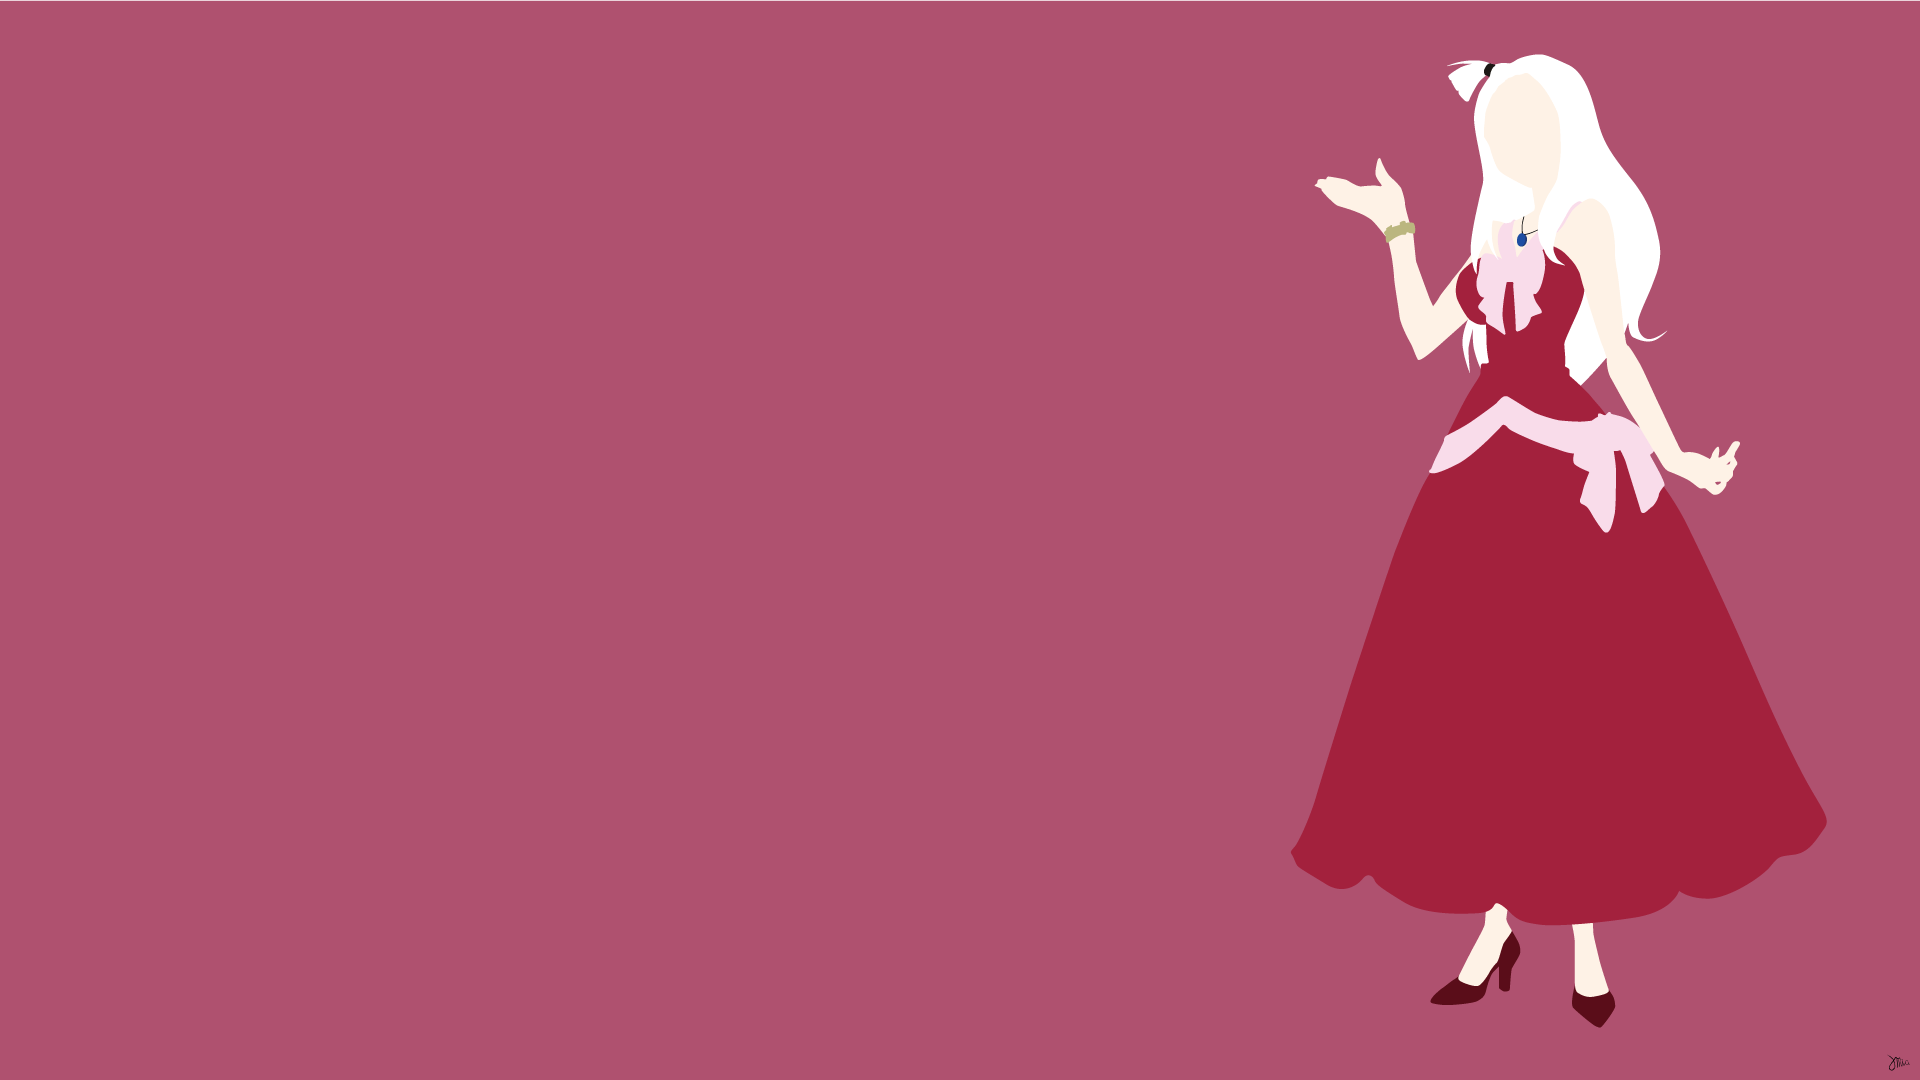 Mirajane Strauss Fairy Tail Minimalistic Wallpapers by